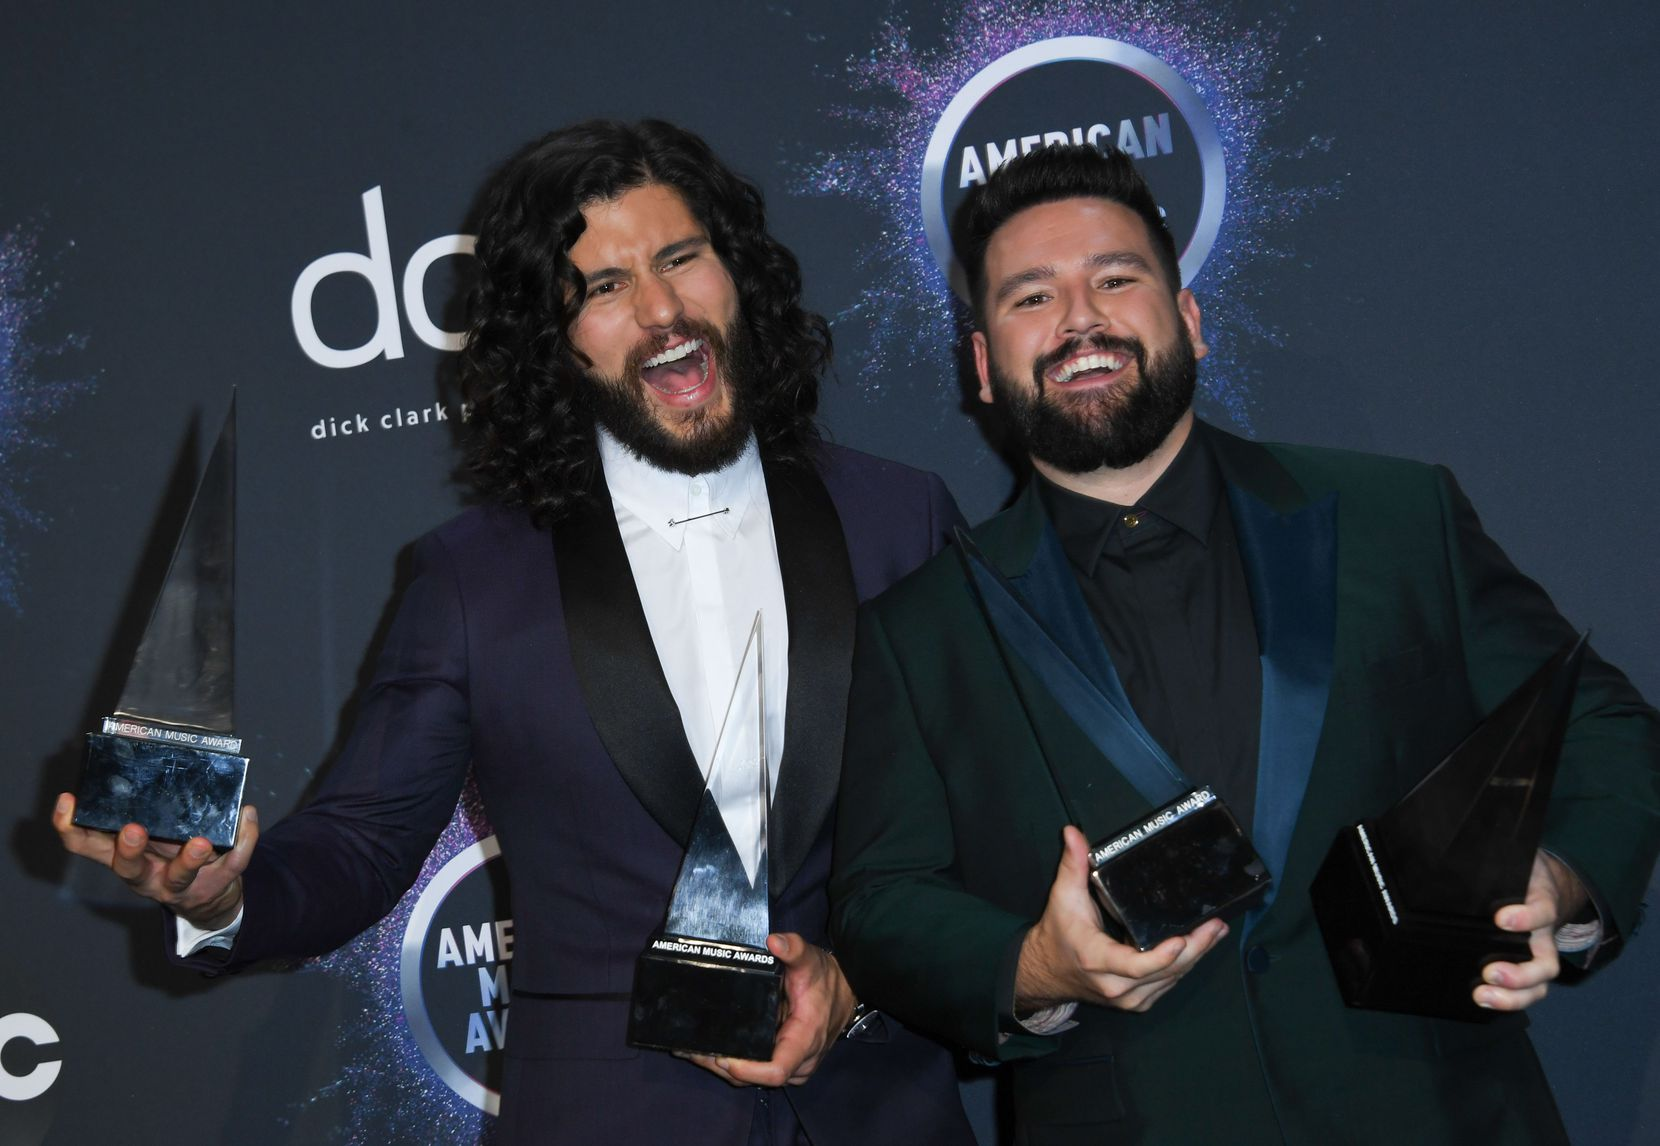 Dan Smyers and Shay Mooney of the musical duo Dan + Shay posed with their awards in the press room during the 2019 American Music Awards at the Microsoft Theatre in Los Angeles on Nov. 24, 2019.